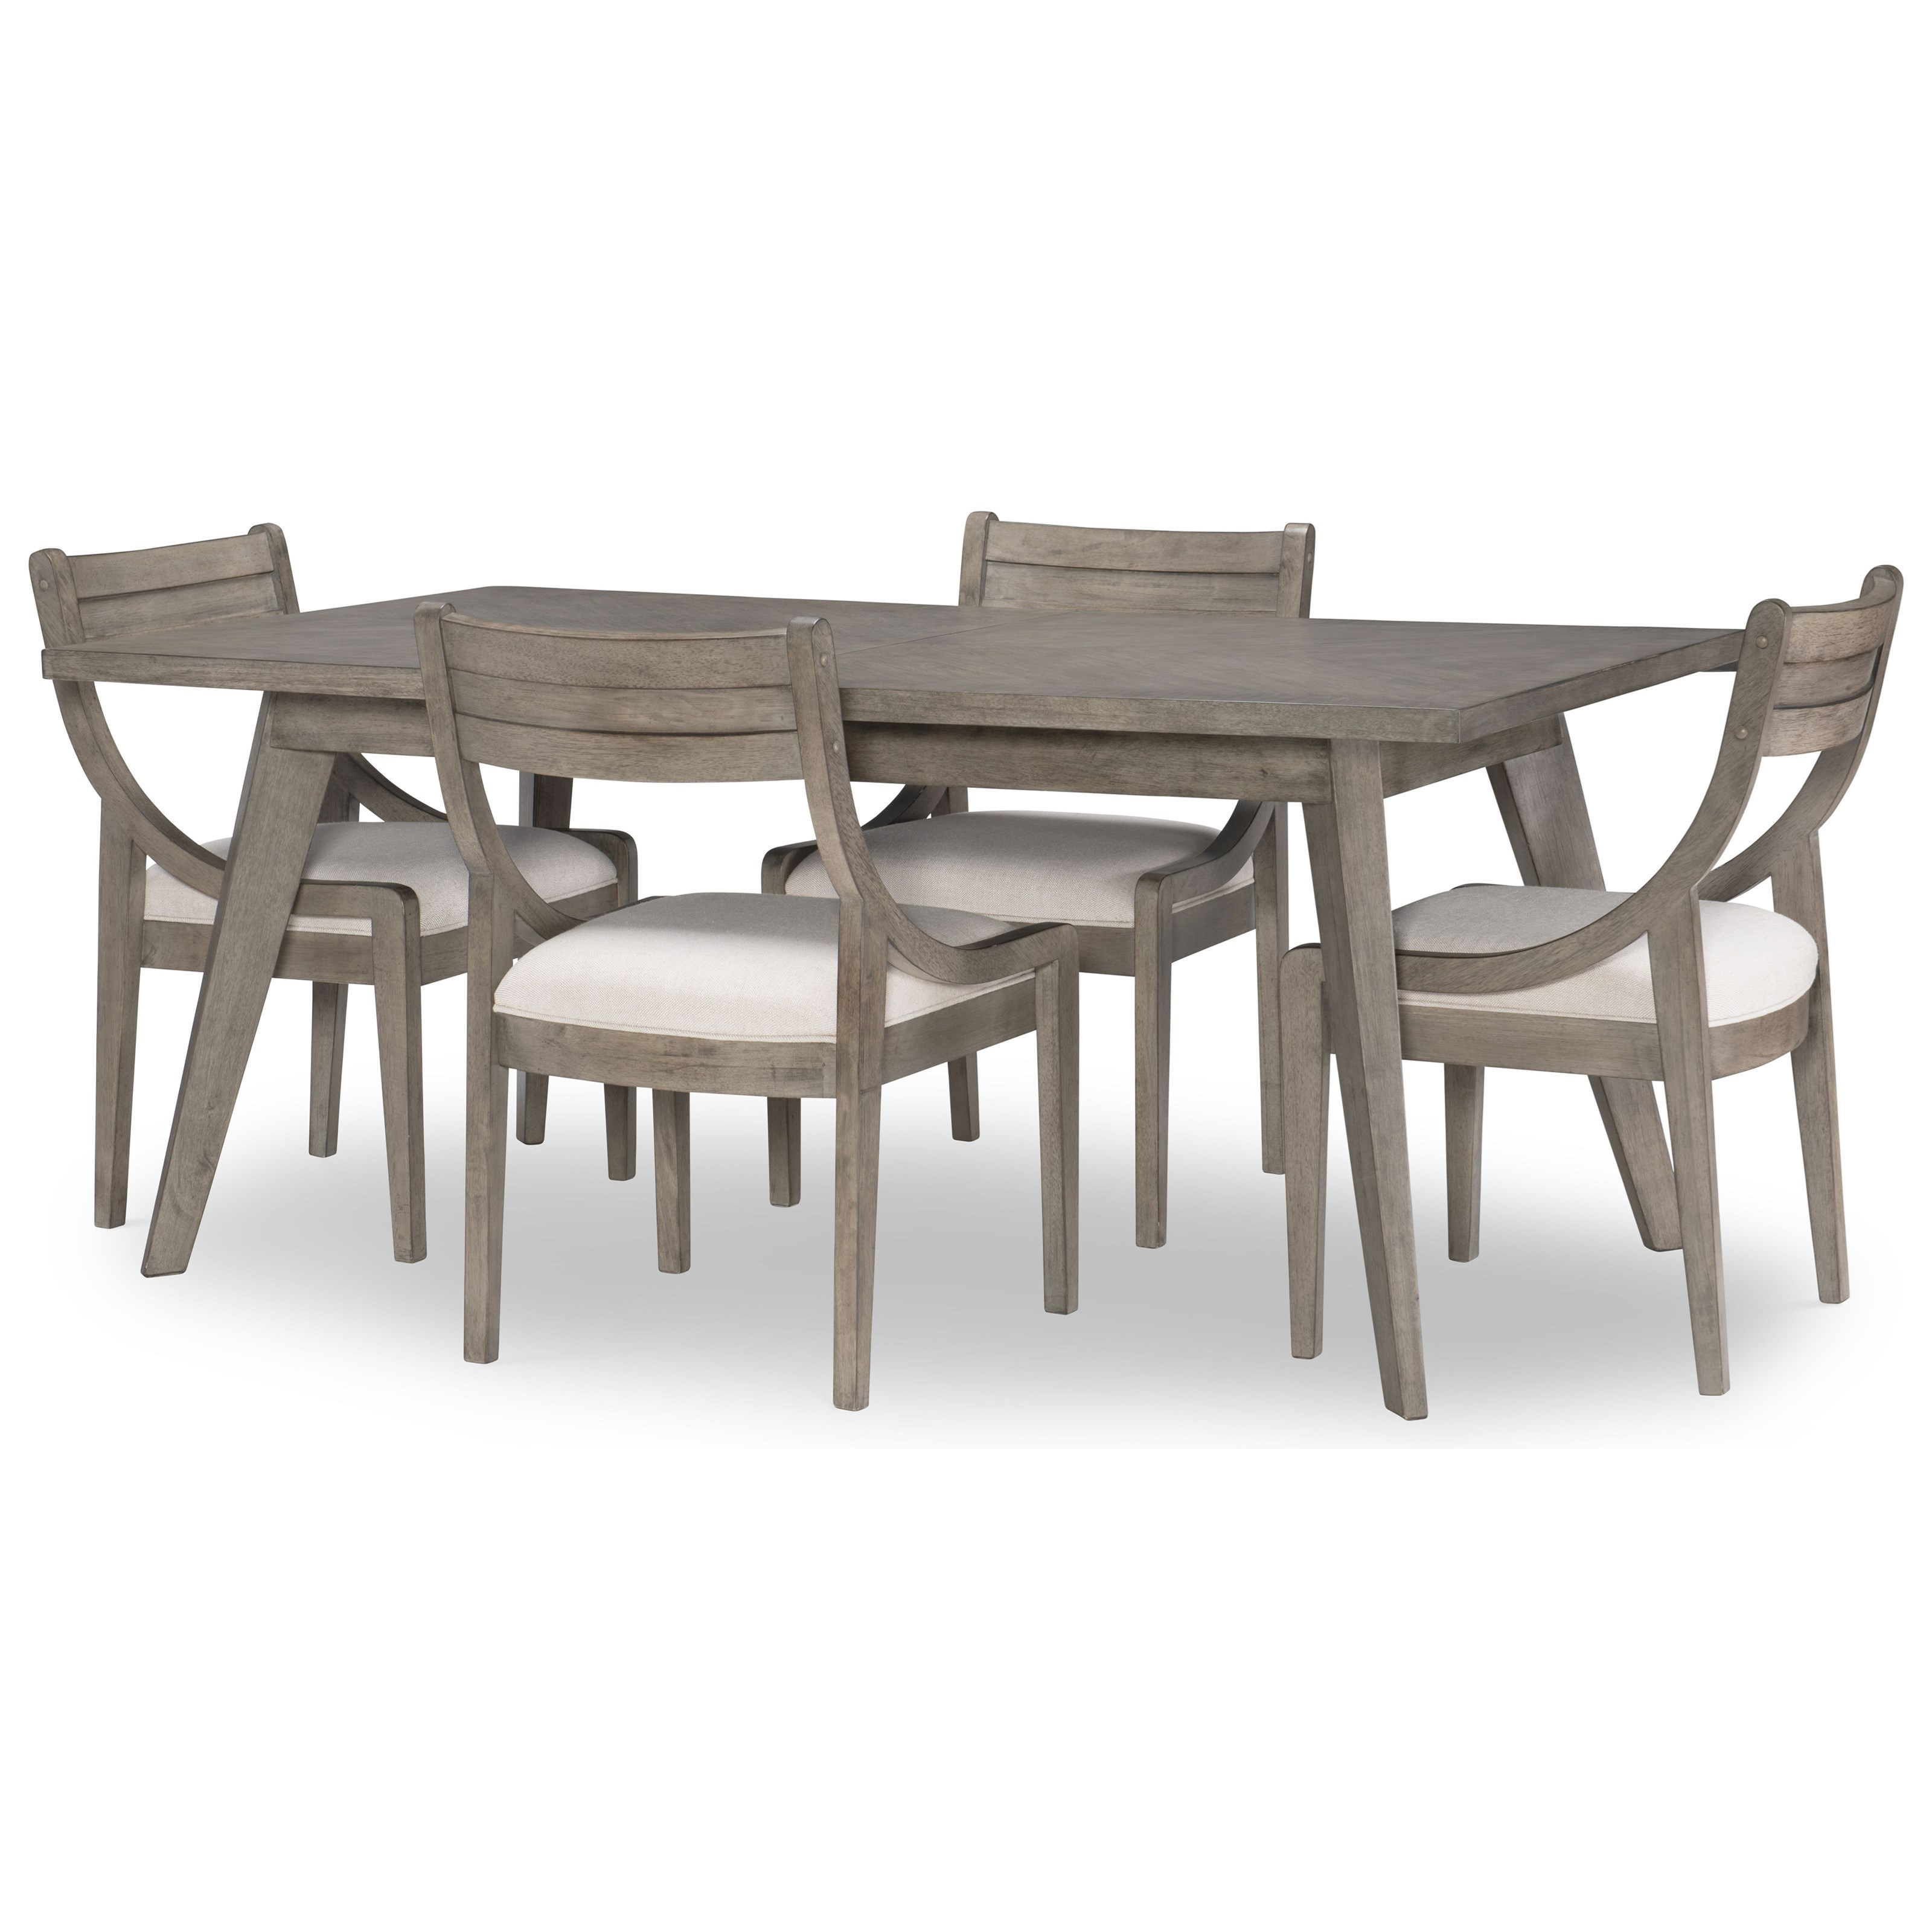 Greystone 5-Piece Rectangular Table and Chair Set by Legacy Classic at Darvin Furniture